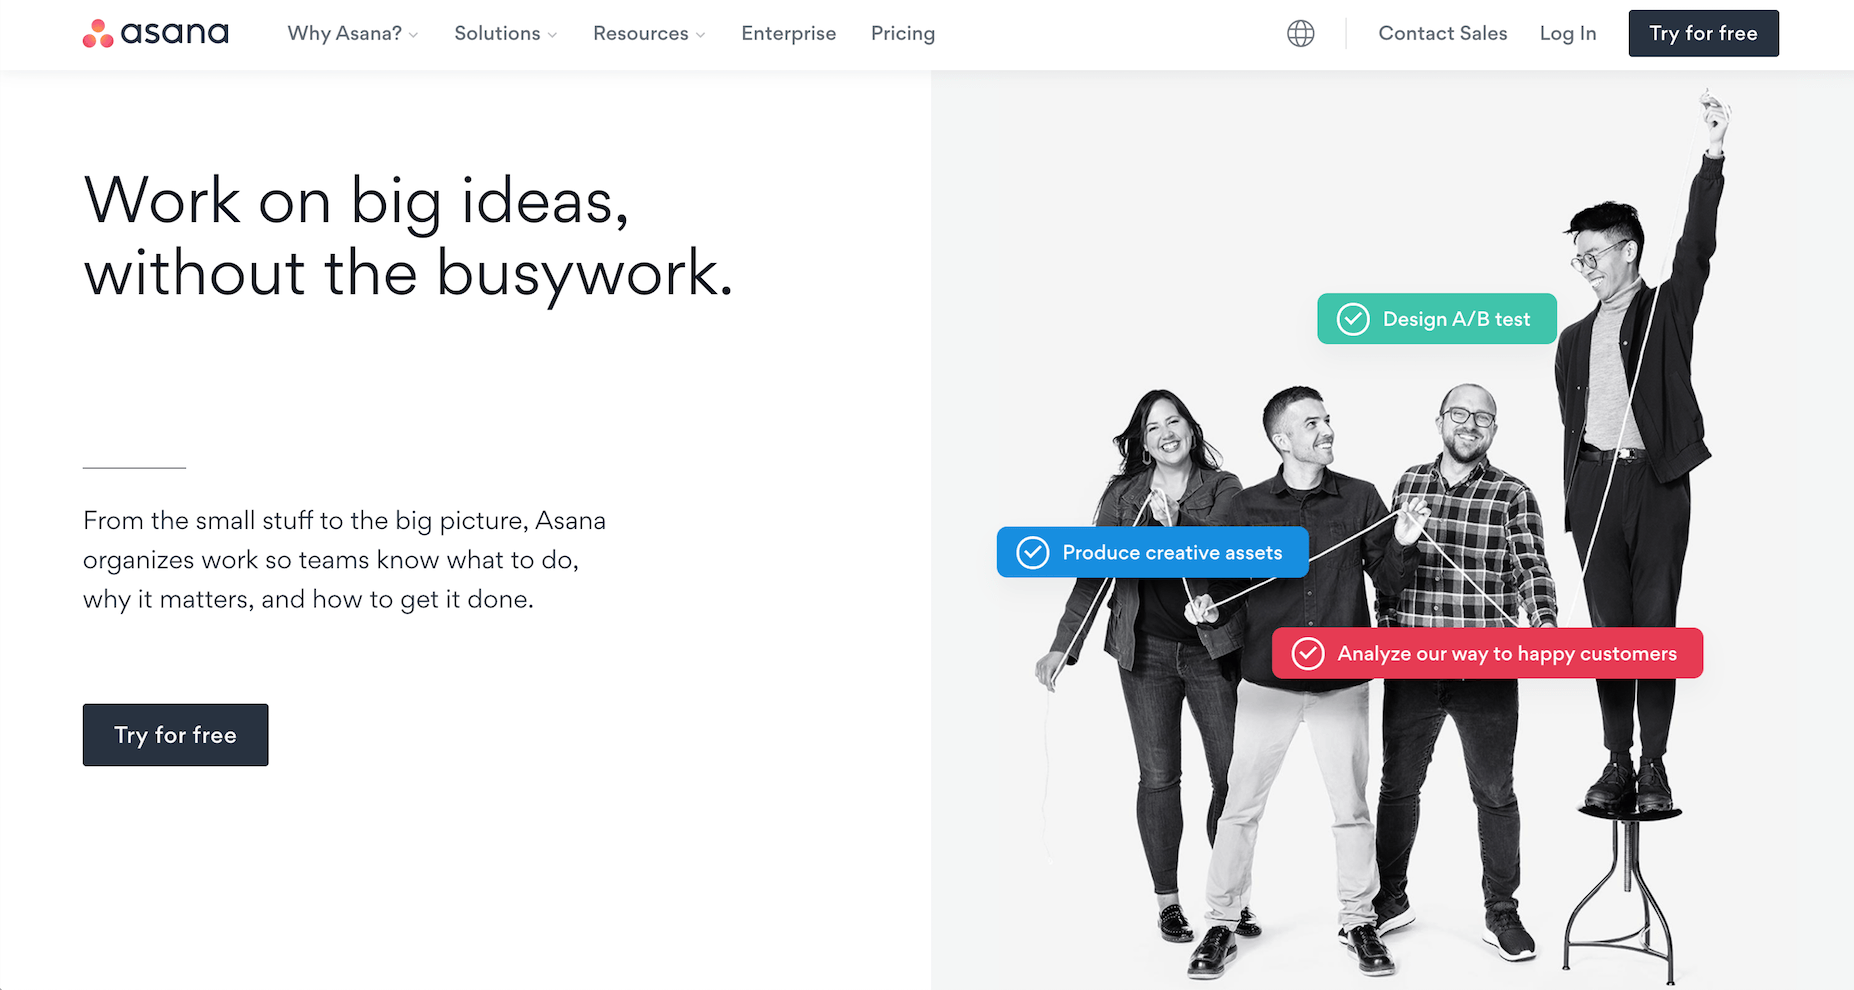 the Asana B2B website homepage design showing a prominent call to action button